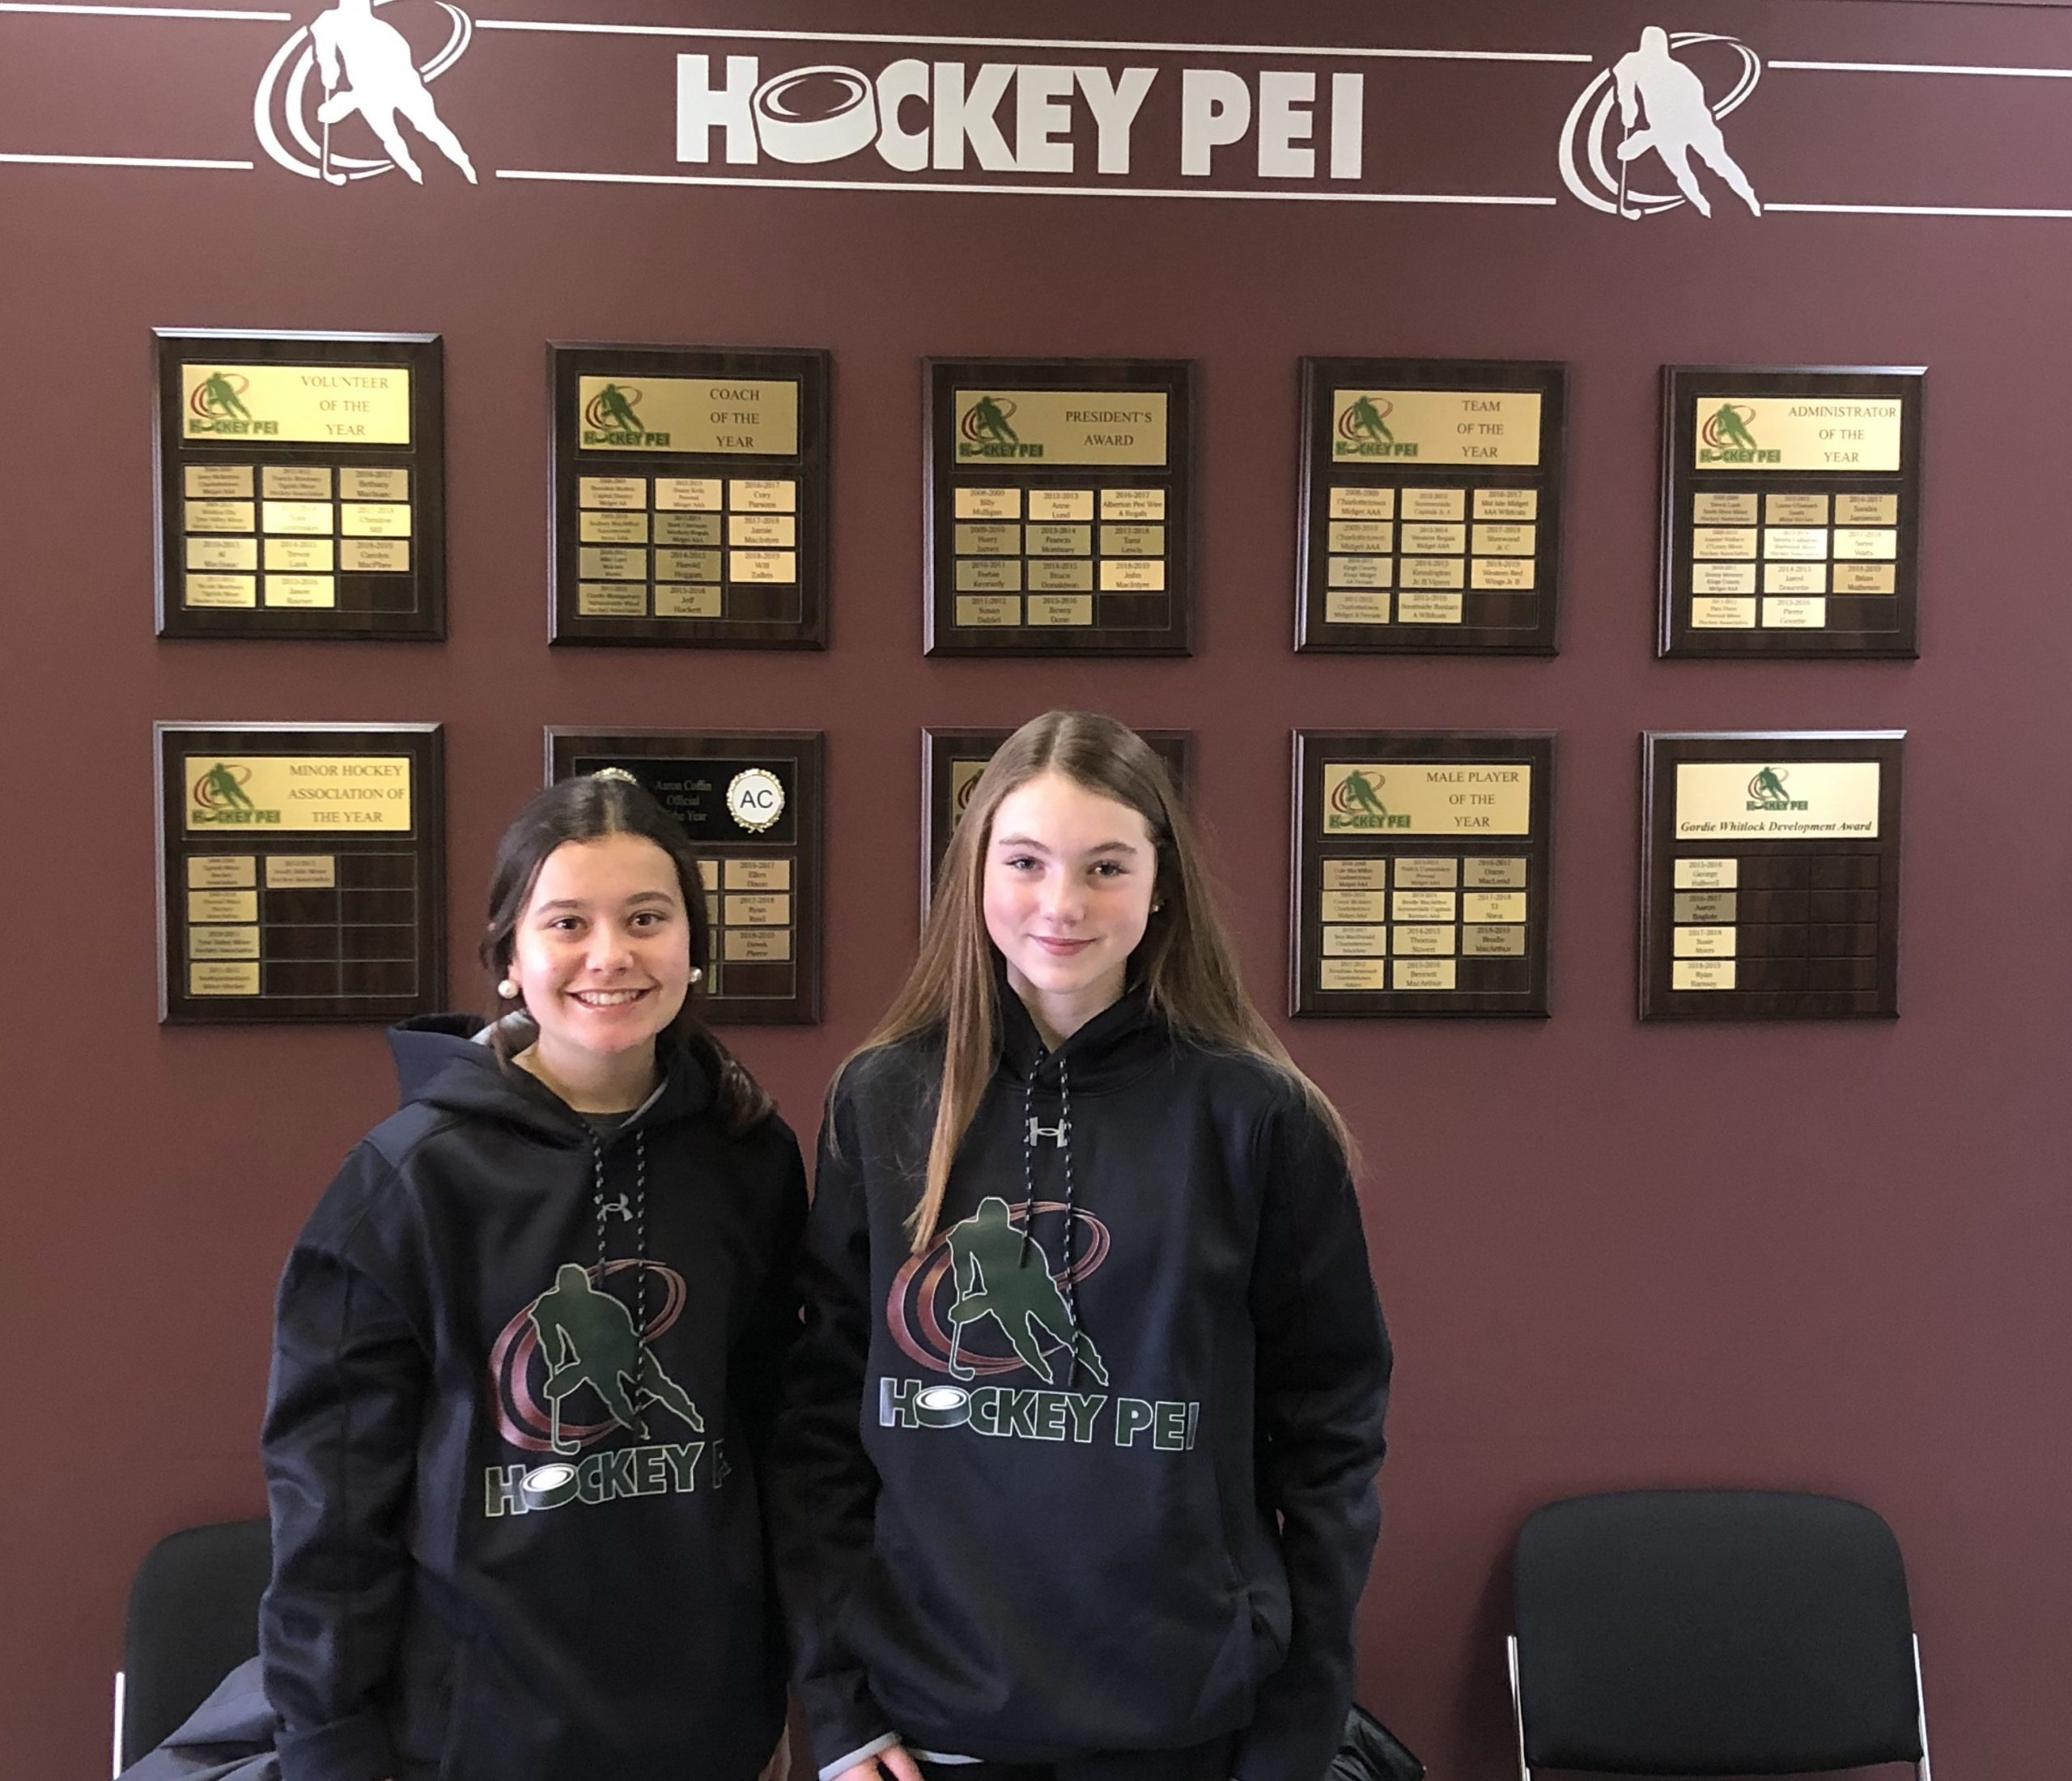 Marshall and Mason Selected to Represent Hockey PEI at IIHF Global Girls Game